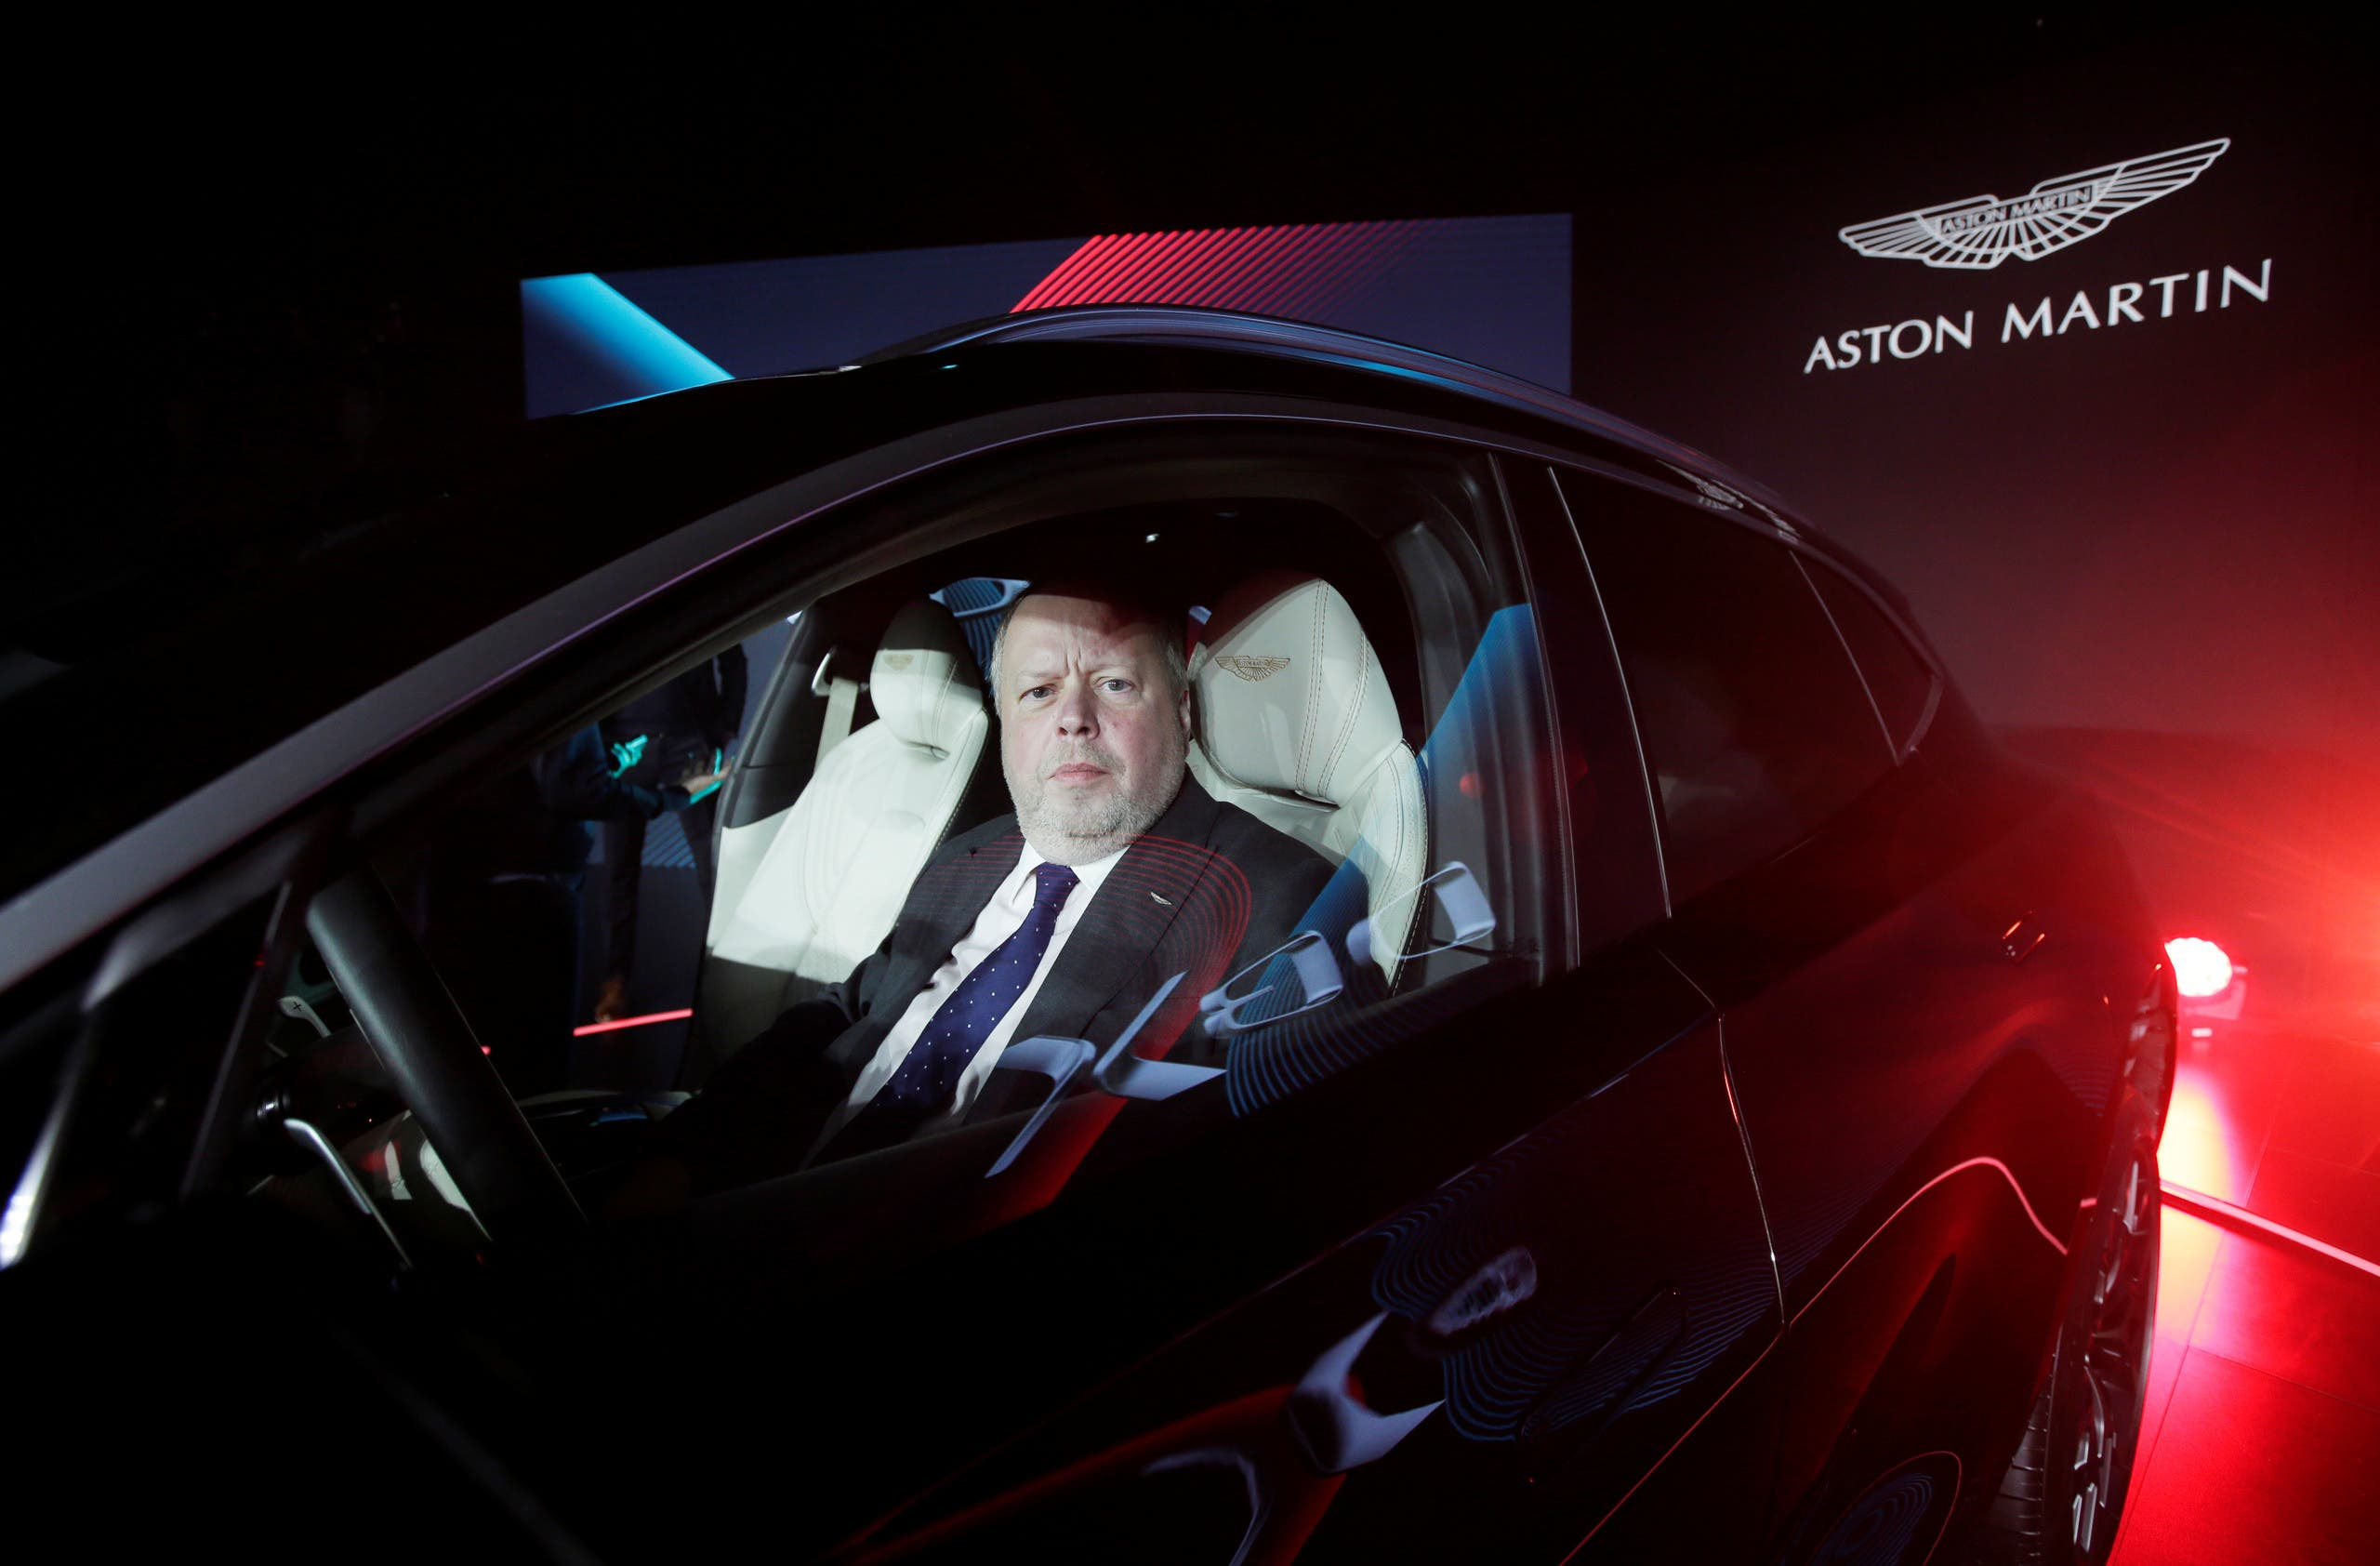 CEO of Aston Martin Andy Palmer poses for a photo inside the company's first sport utility vehicle Aston Martin DBX in Beijing, China November 20, 2019. (Reuters)